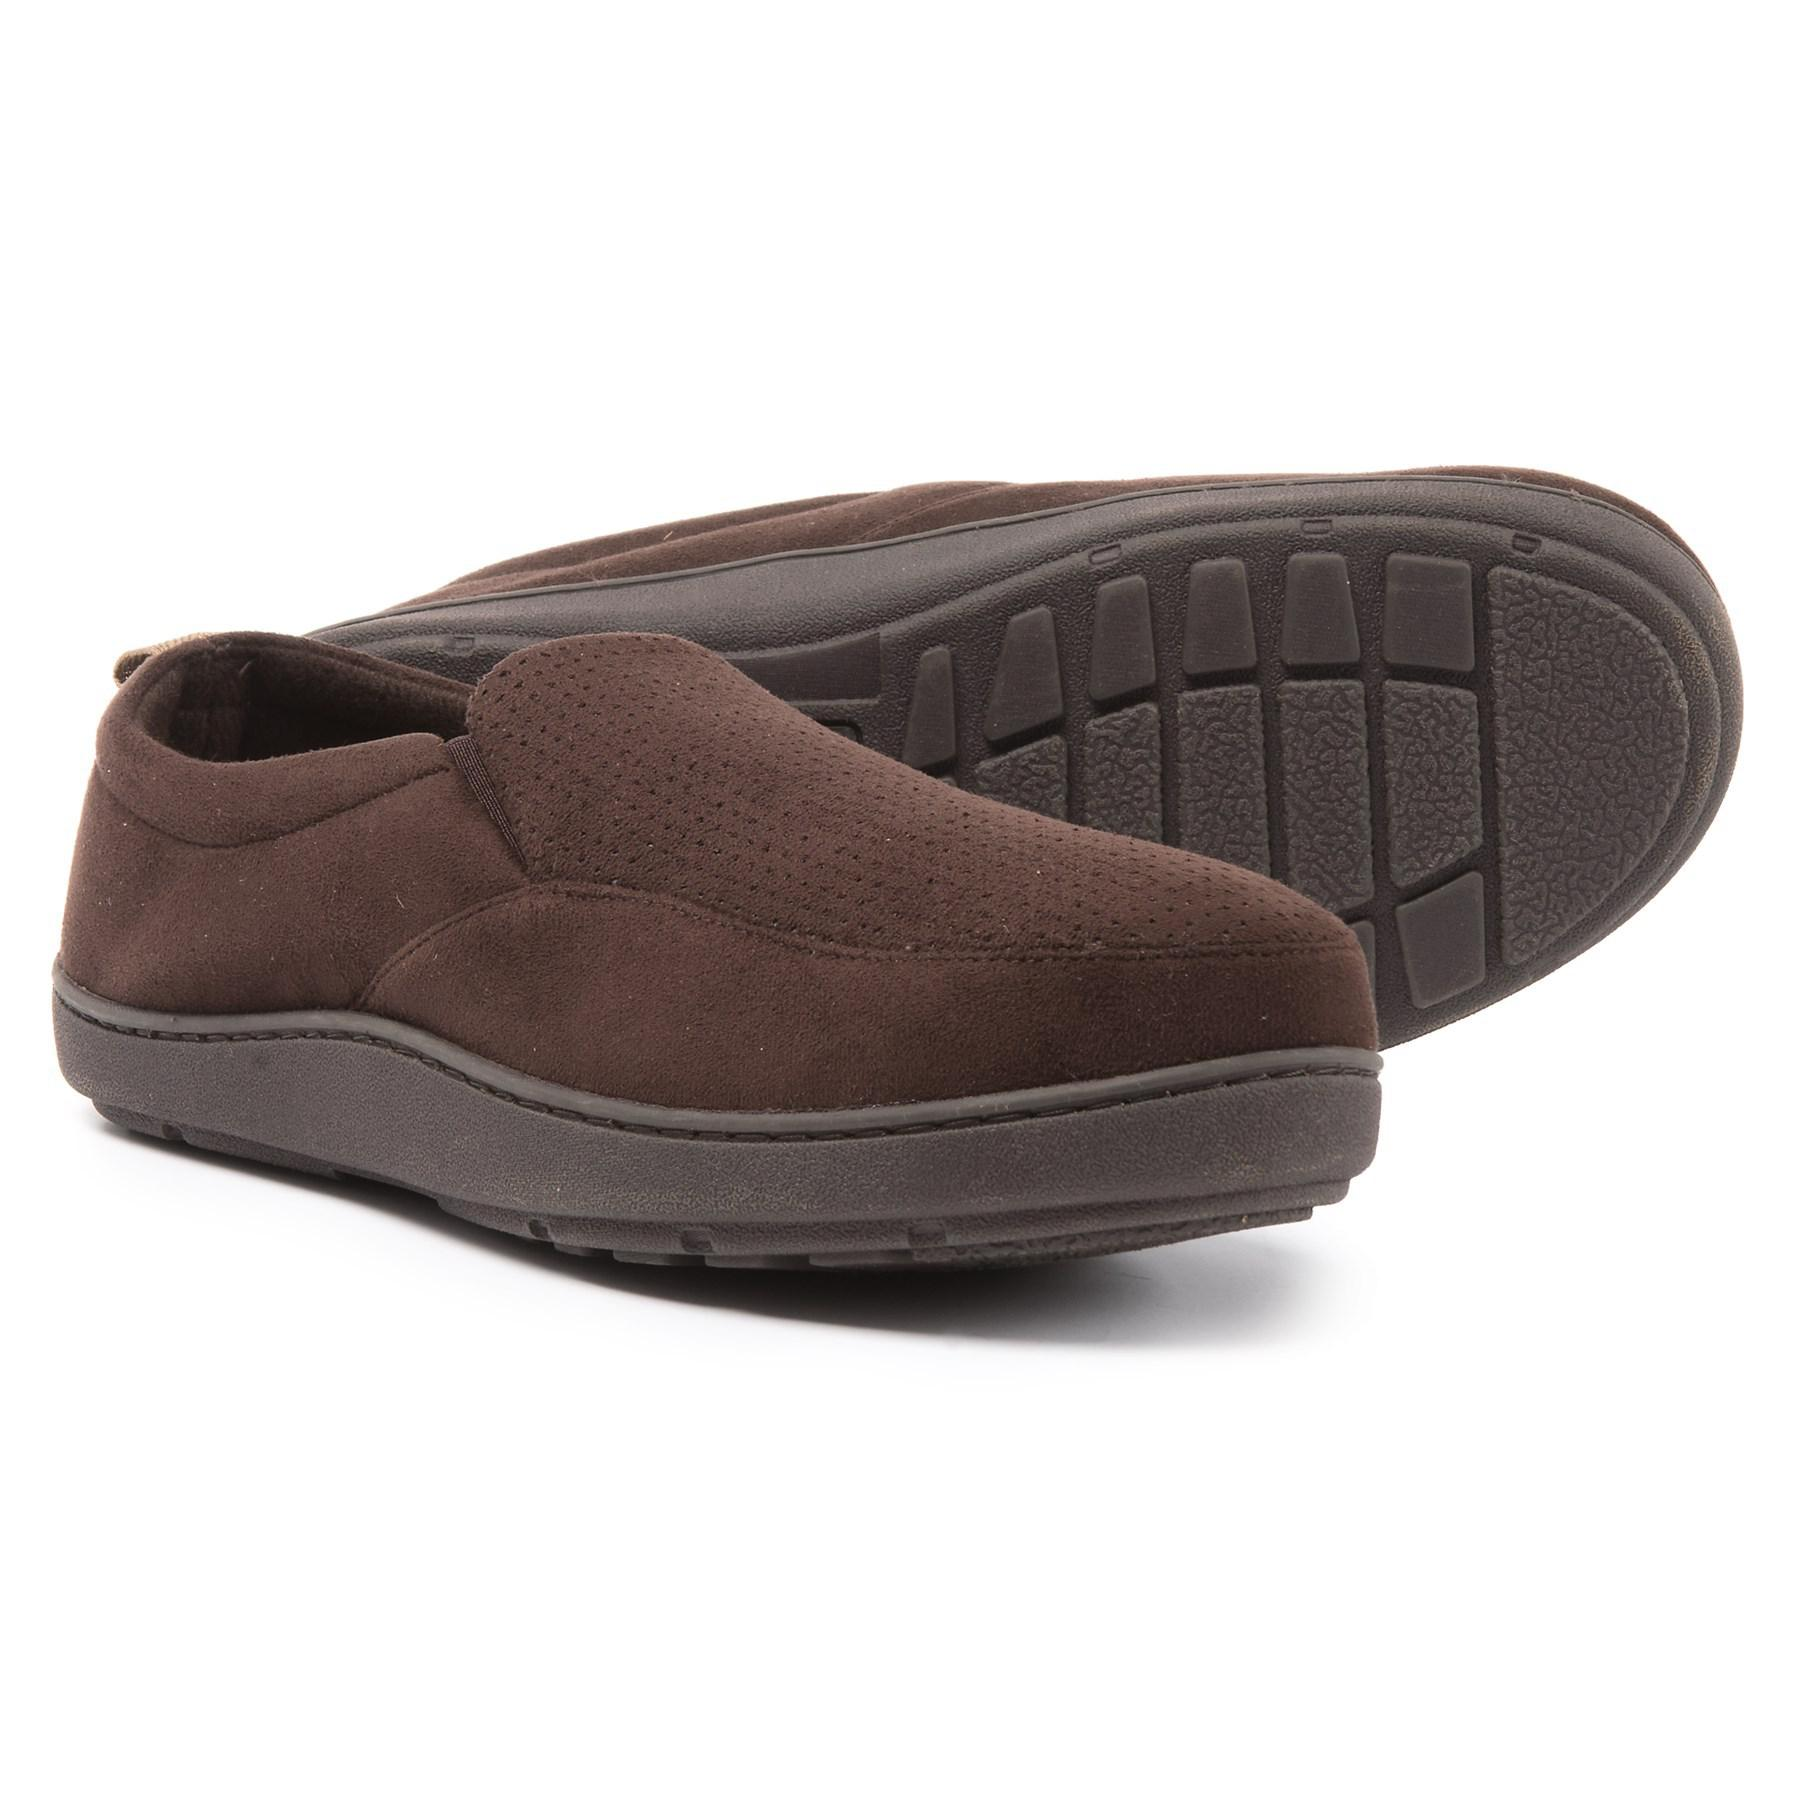 1156d76562f1 Lyst - Dearfoams Rugged Closed-back Slippers (for Men) in Brown for Men